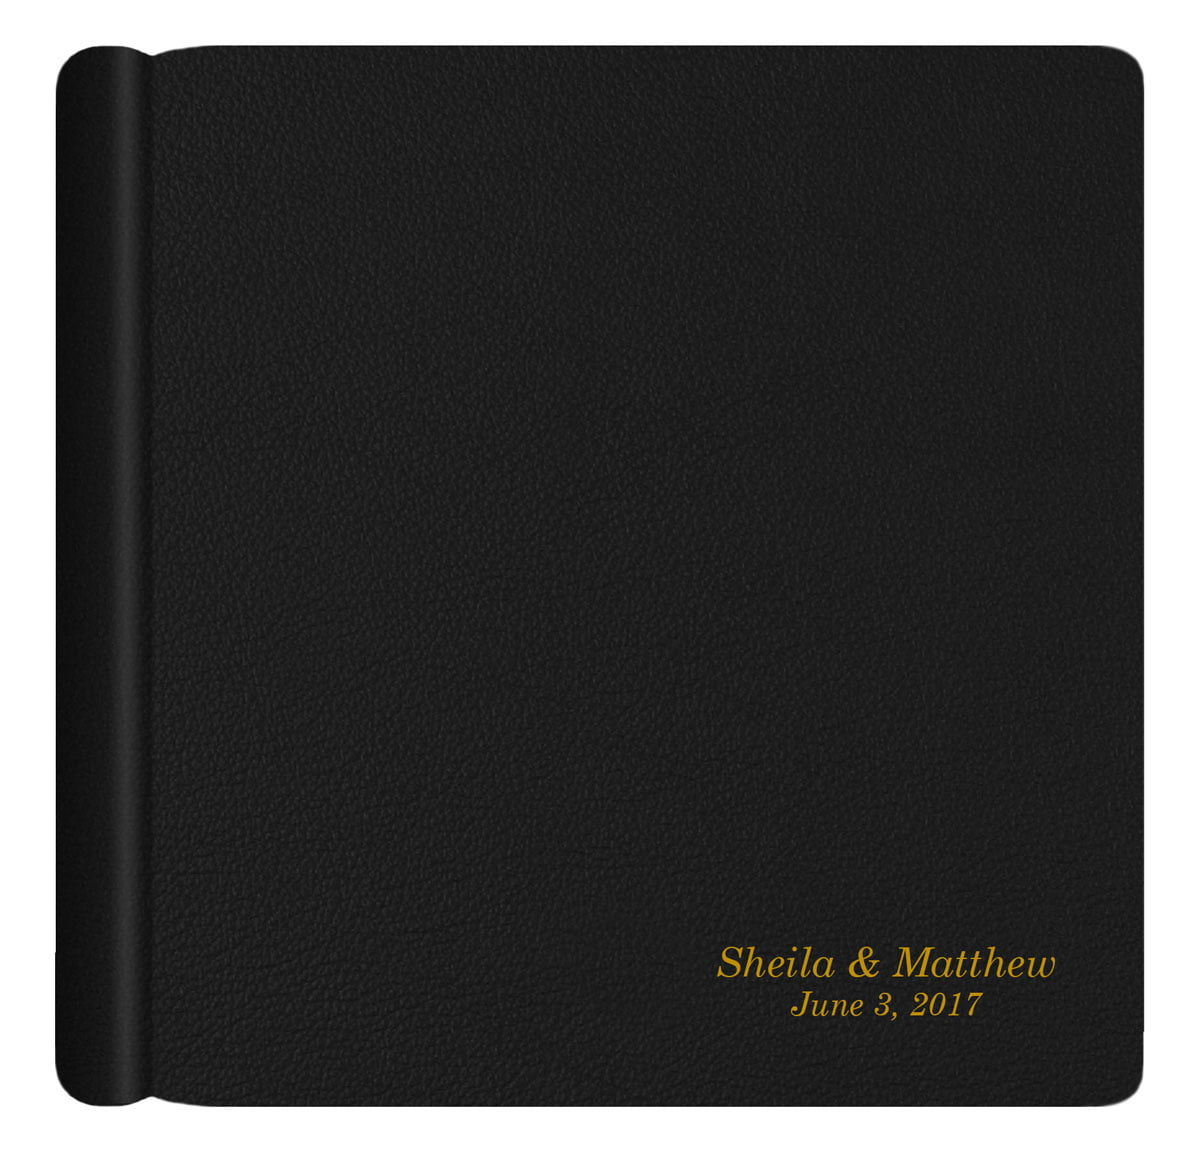 Zookbinders – Matted Album with Full Leather